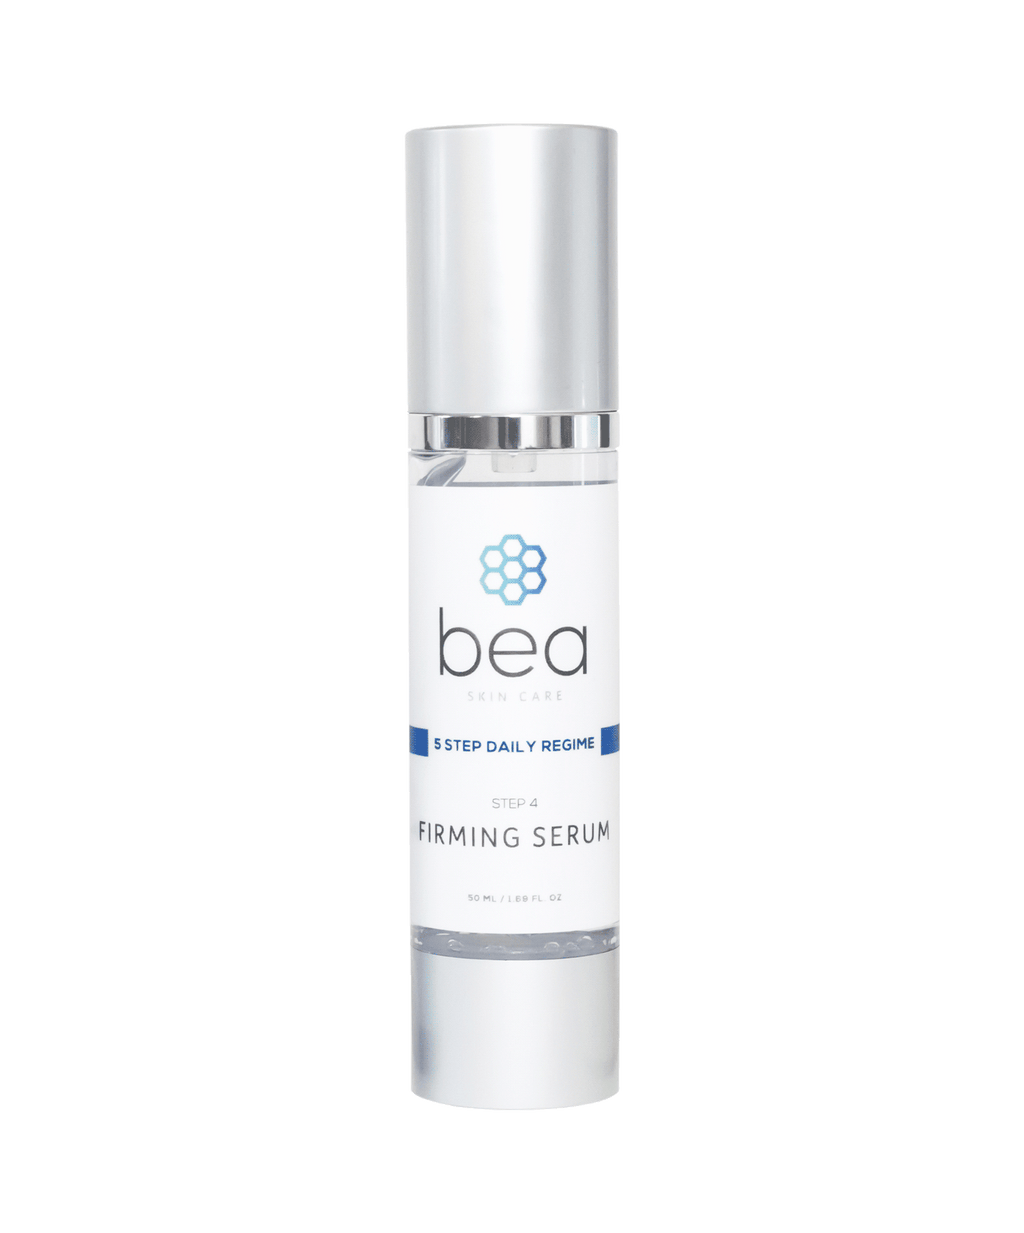 Step 4: Firming Serum - 50 ml Face Serum bea Skin Care